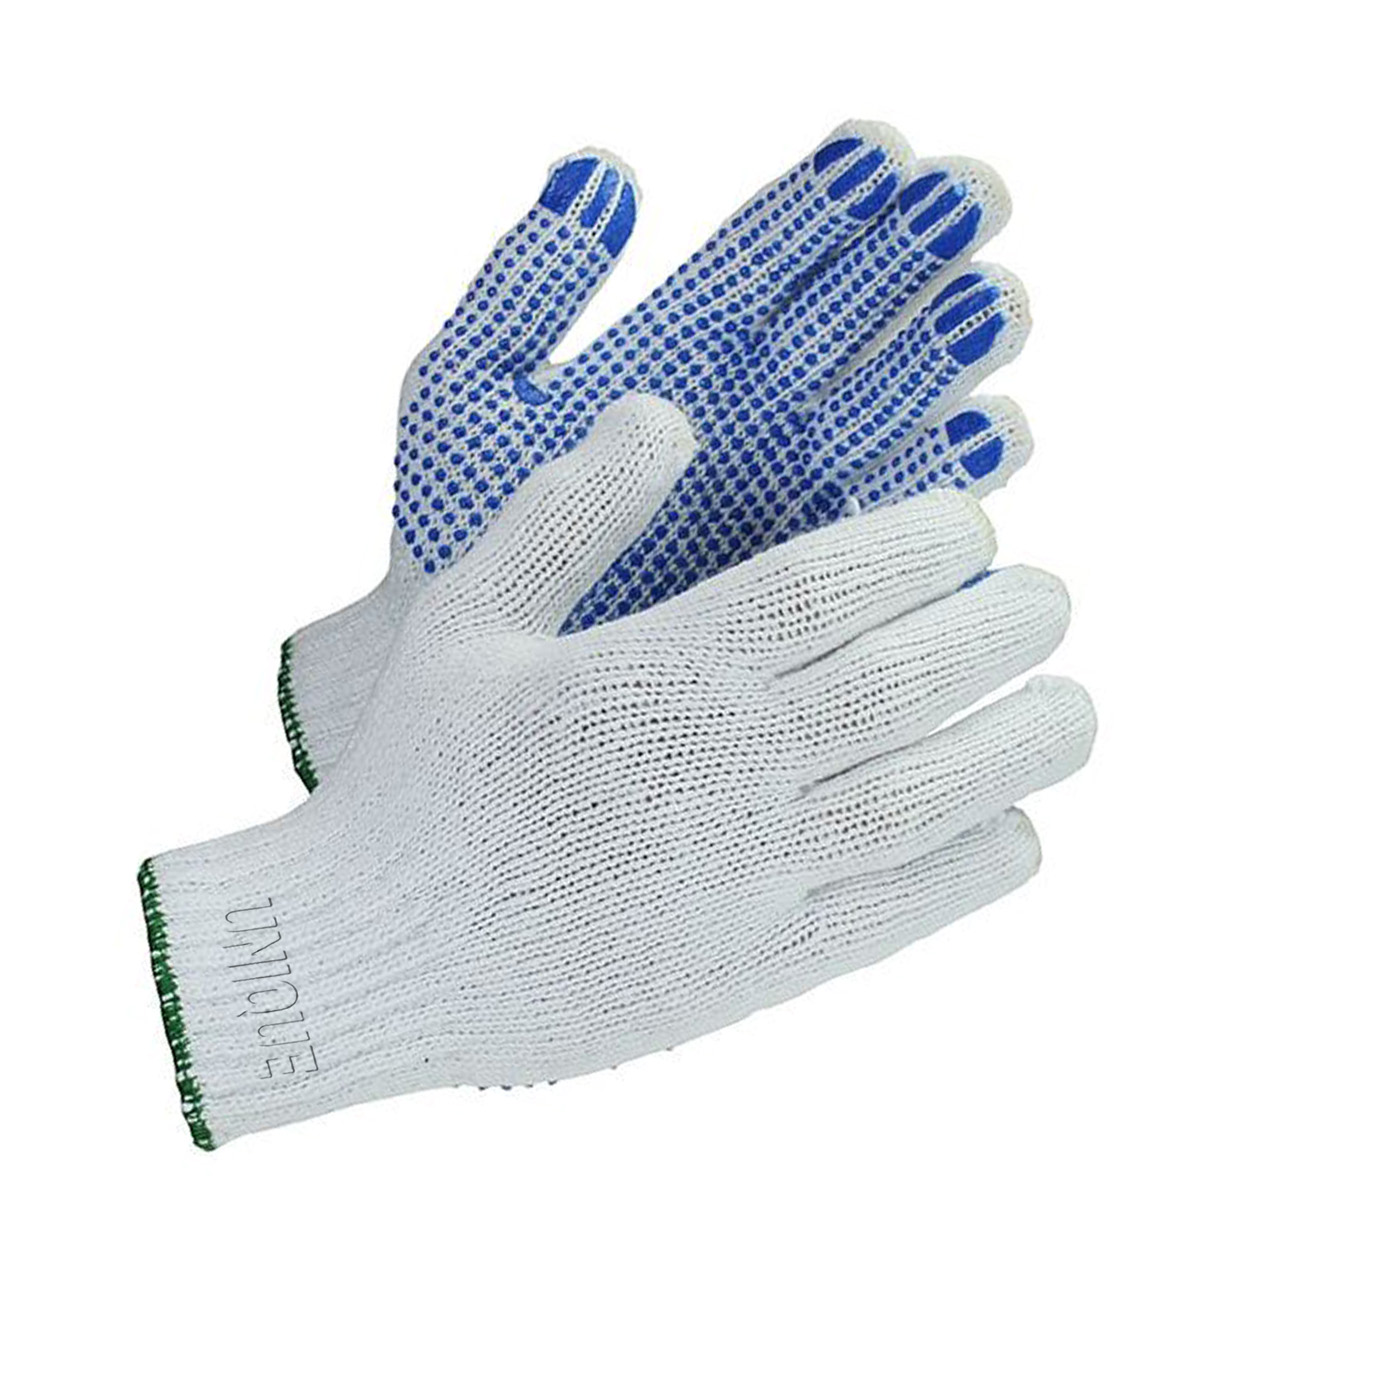 KNIT PALM AND FINGERS COVERED WITH PVC